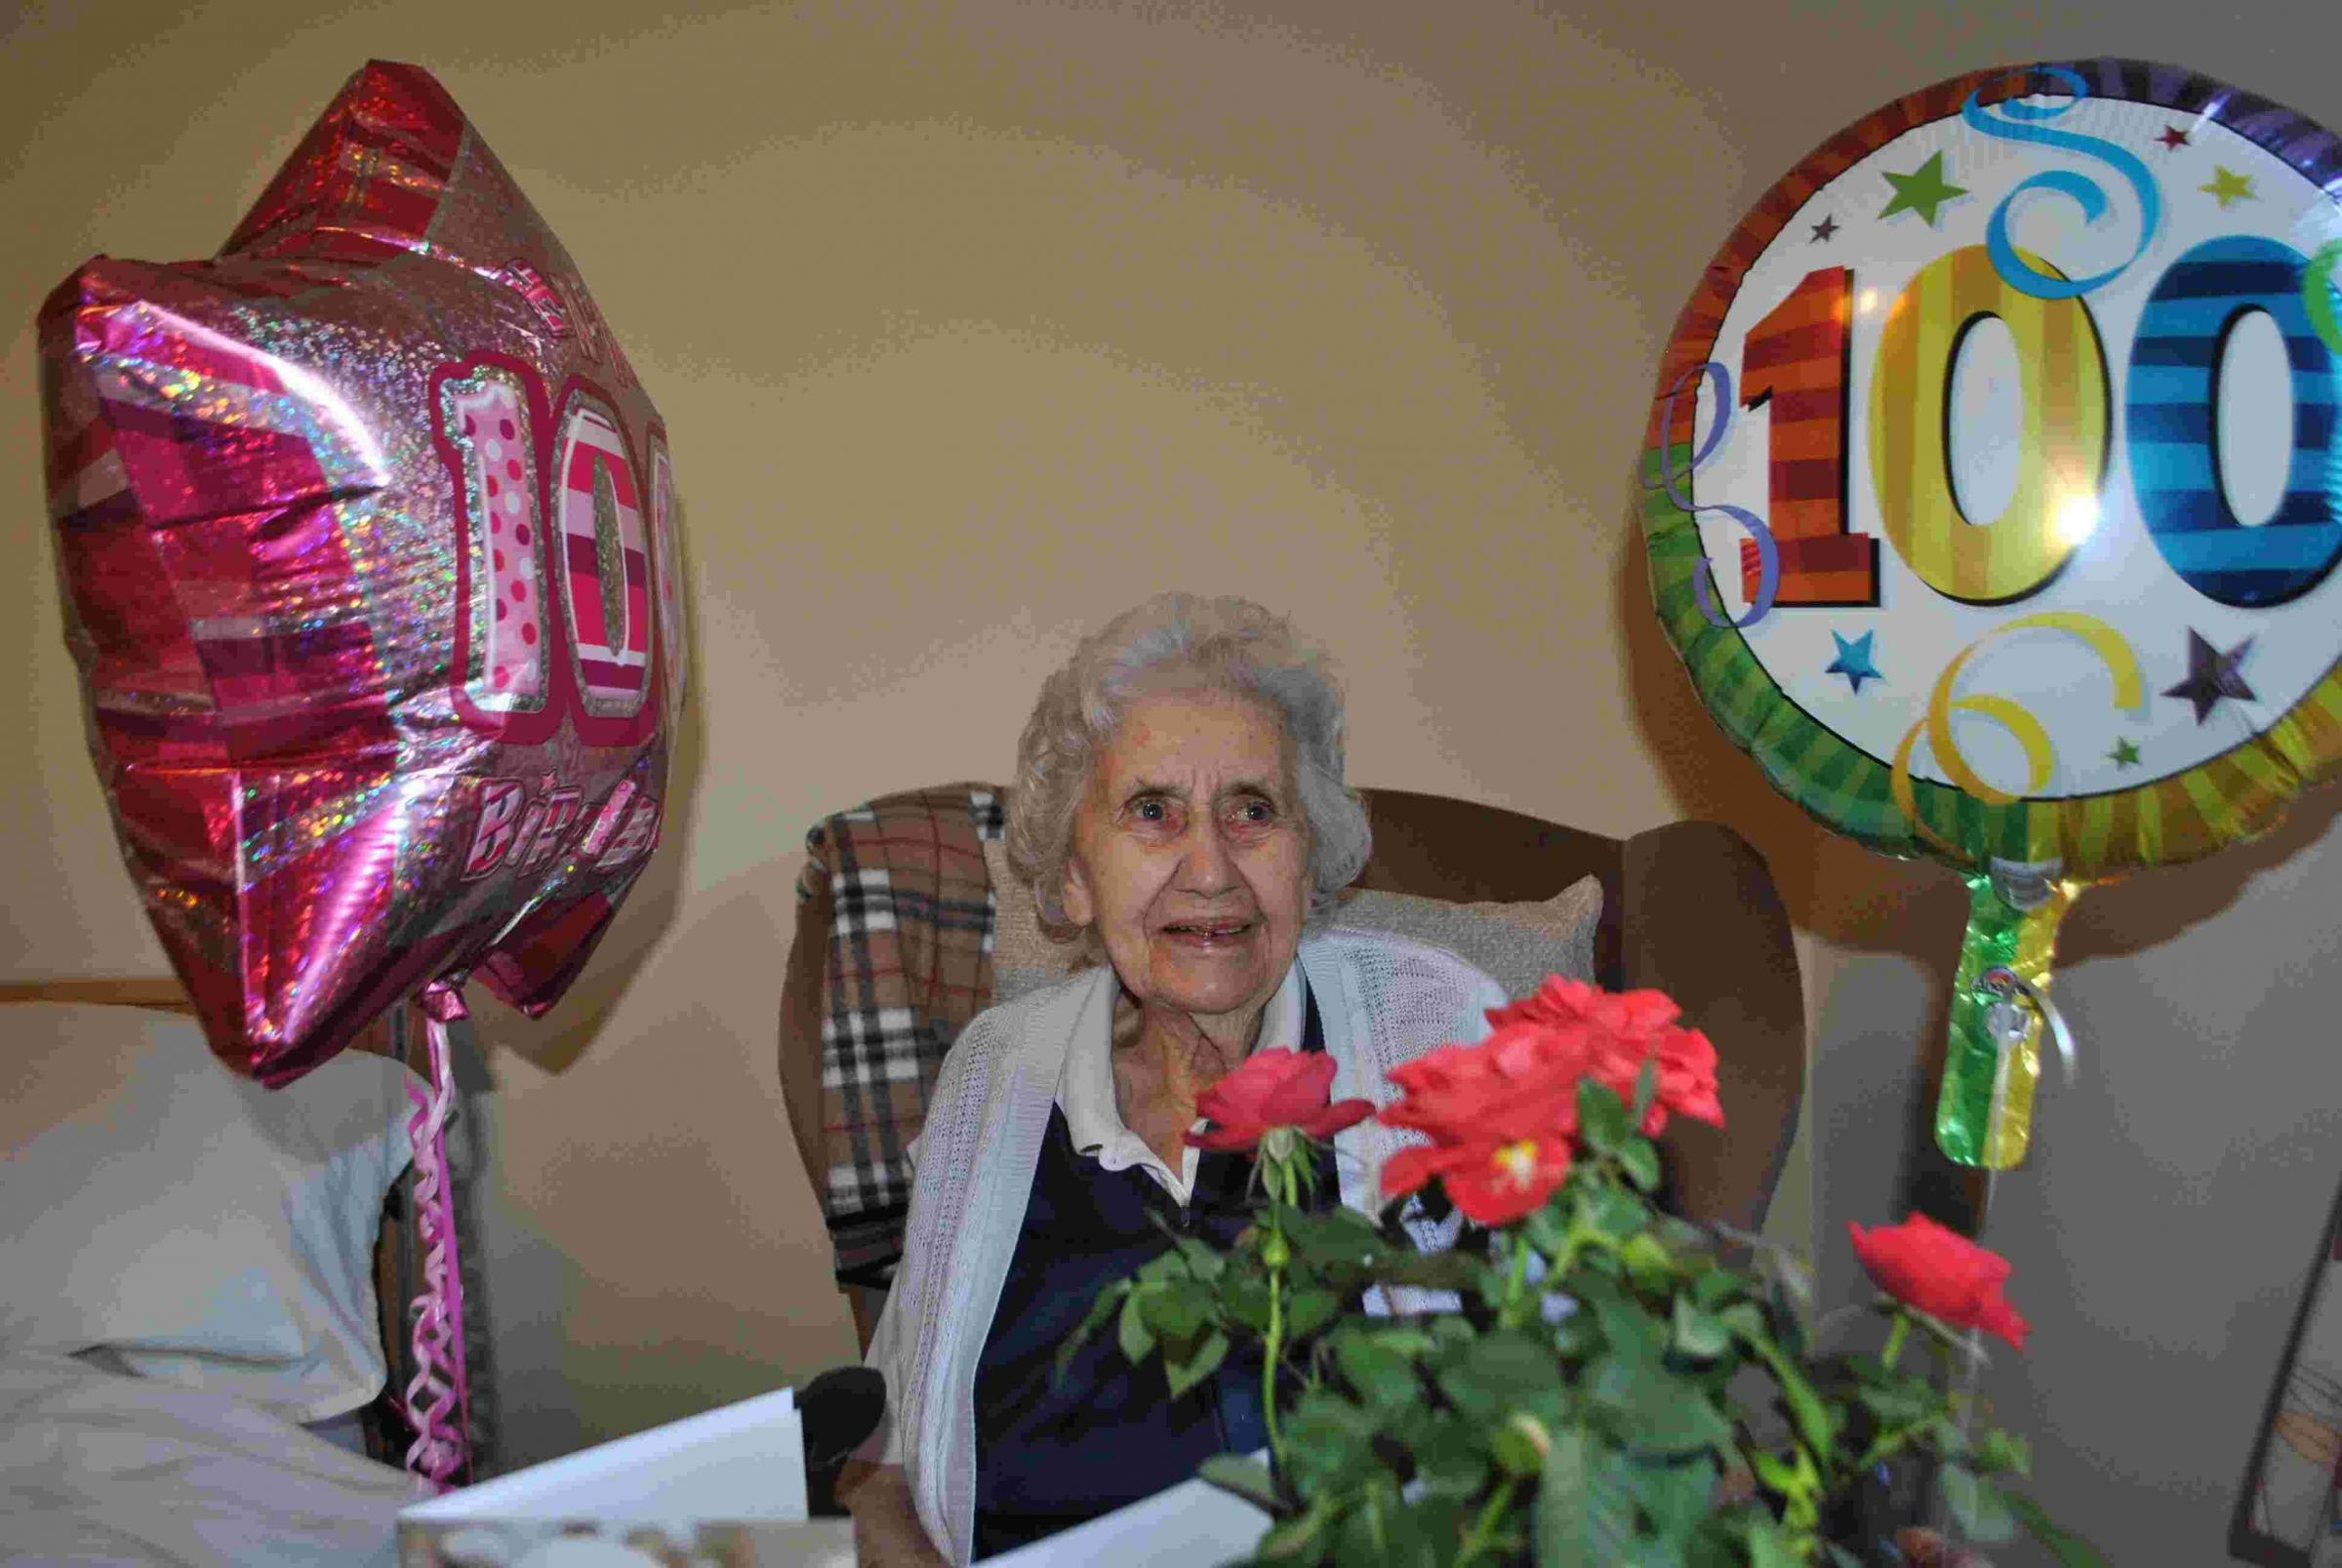 Winifred celebrates becoming a centenarian